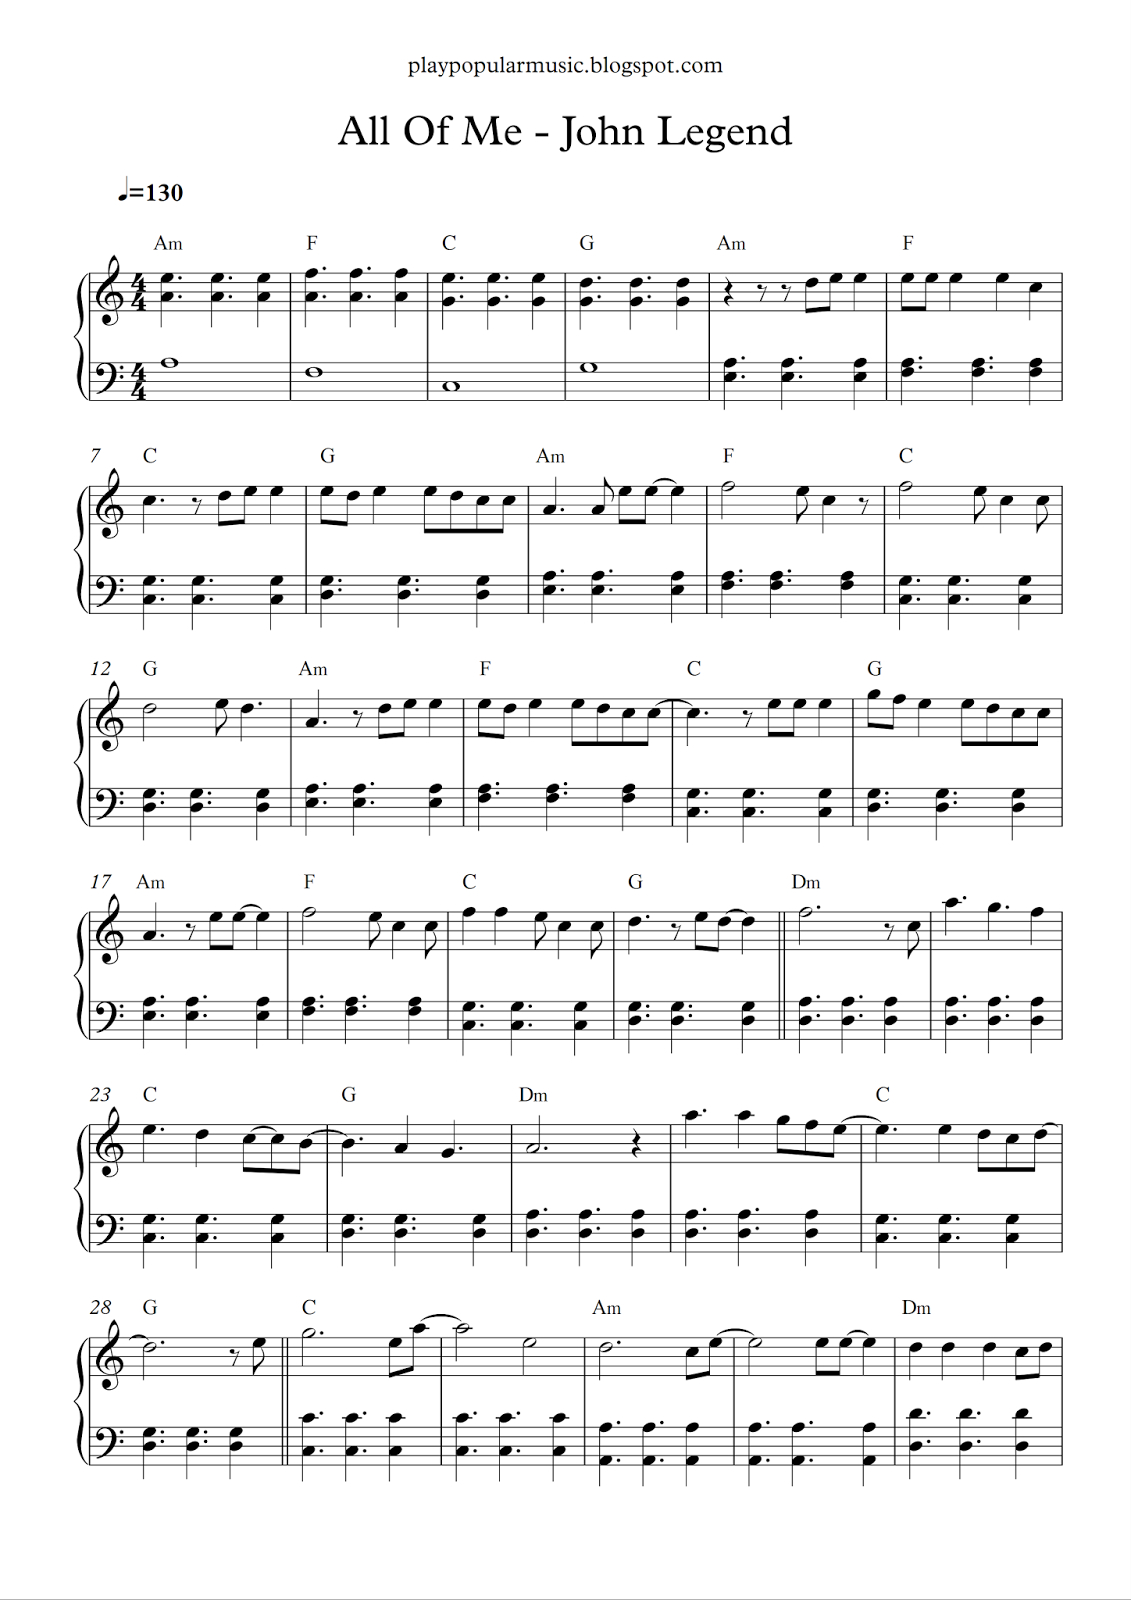 Free Piano Sheet Music: All Of Me - John Legend.pdf What's Going On - Free Printable Music Sheets Pdf